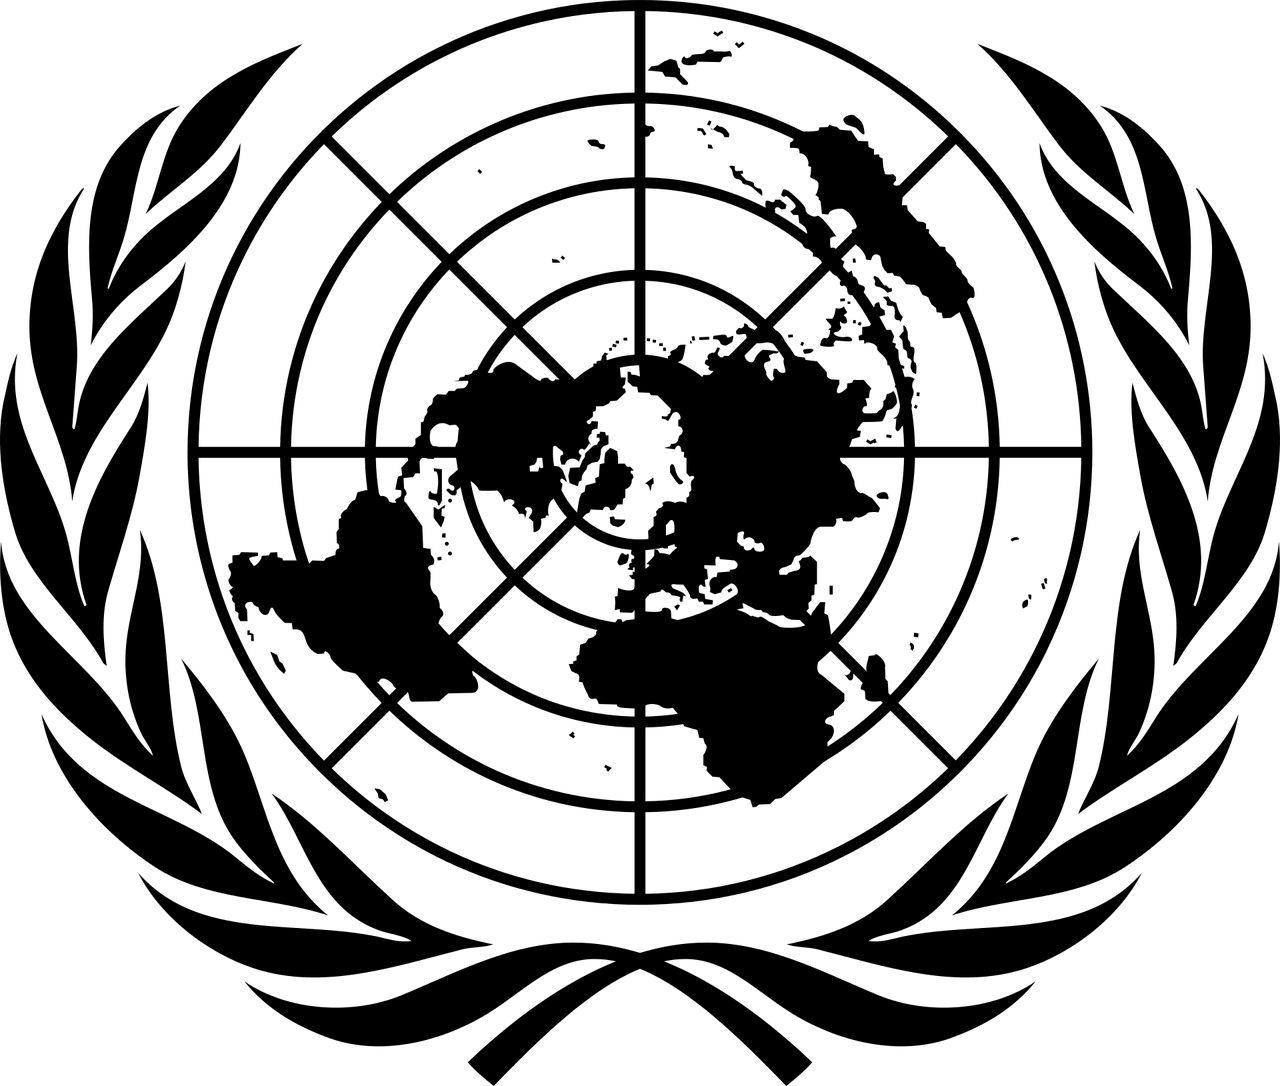 United Nations logo in black.